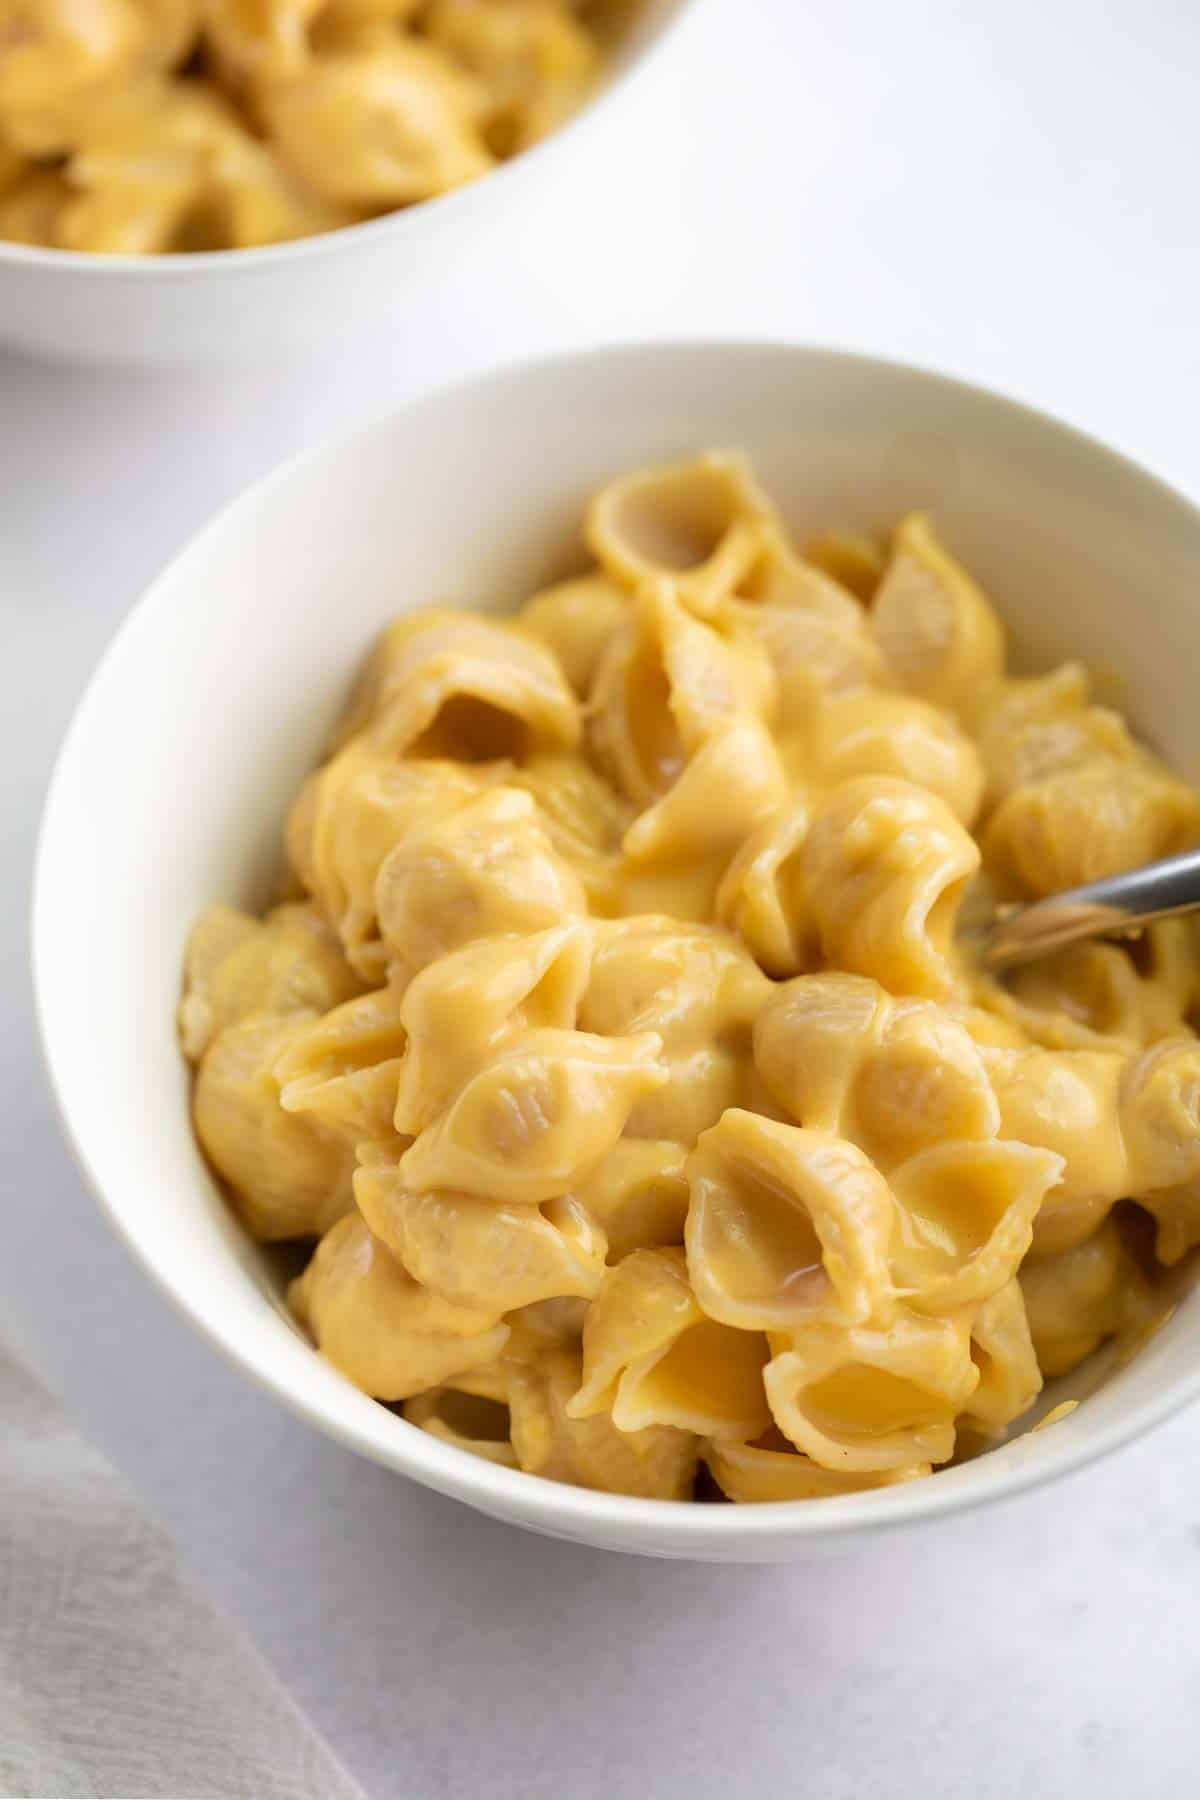 close up shot of mac and cheese in white bowl with spoon